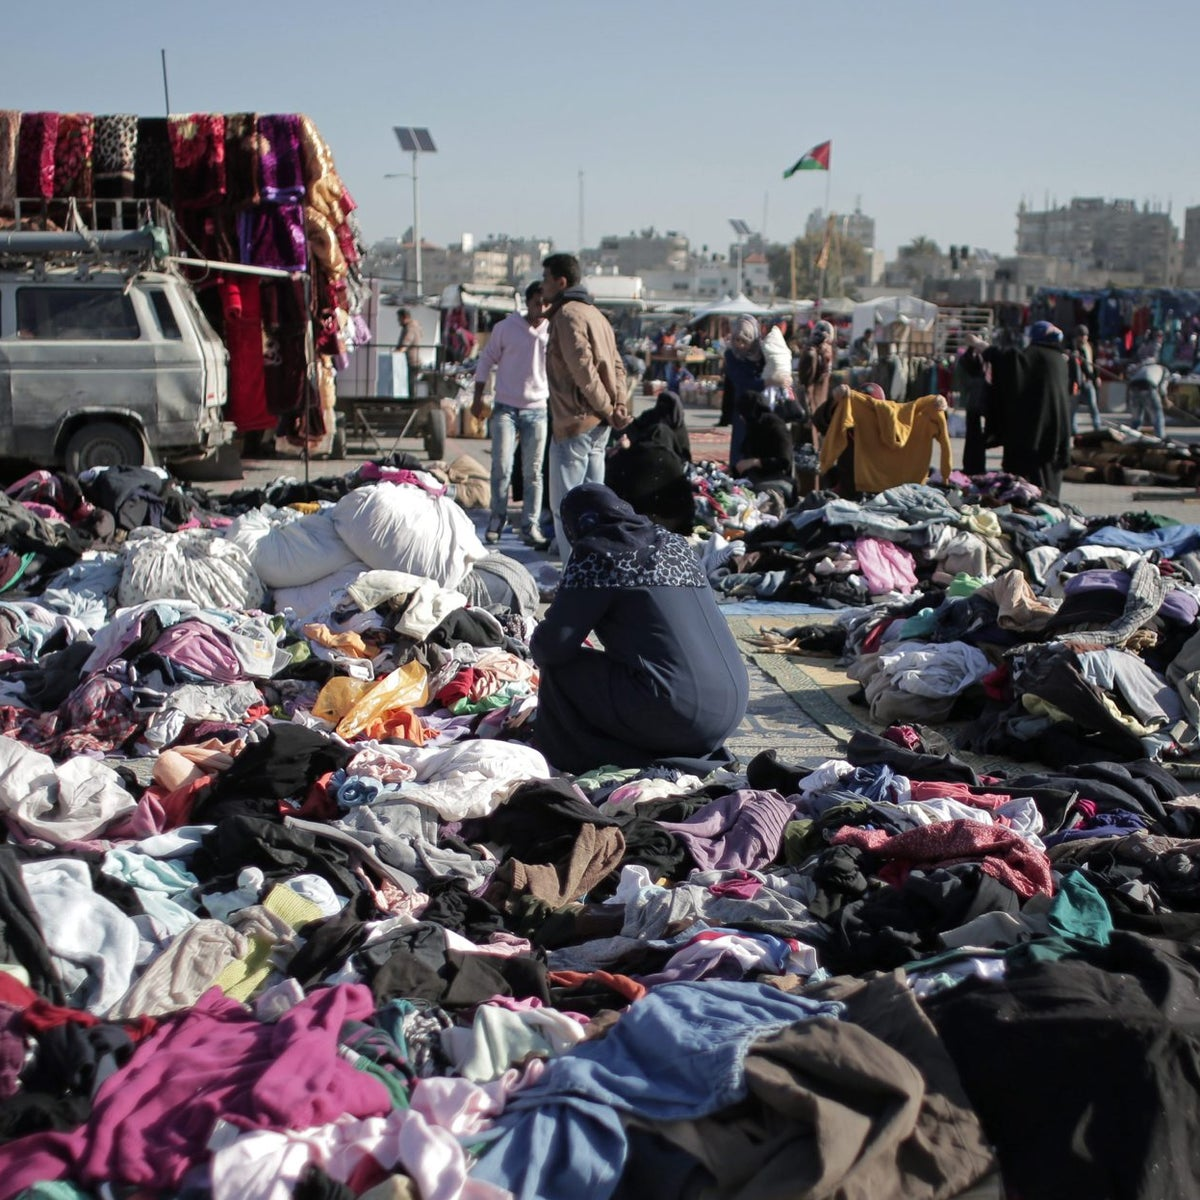 A Palestinian woman sifts through used clothes at the weekly flea market in Nusseirat refugee camp, central Gaza Strip, Feb. 15, 2016.